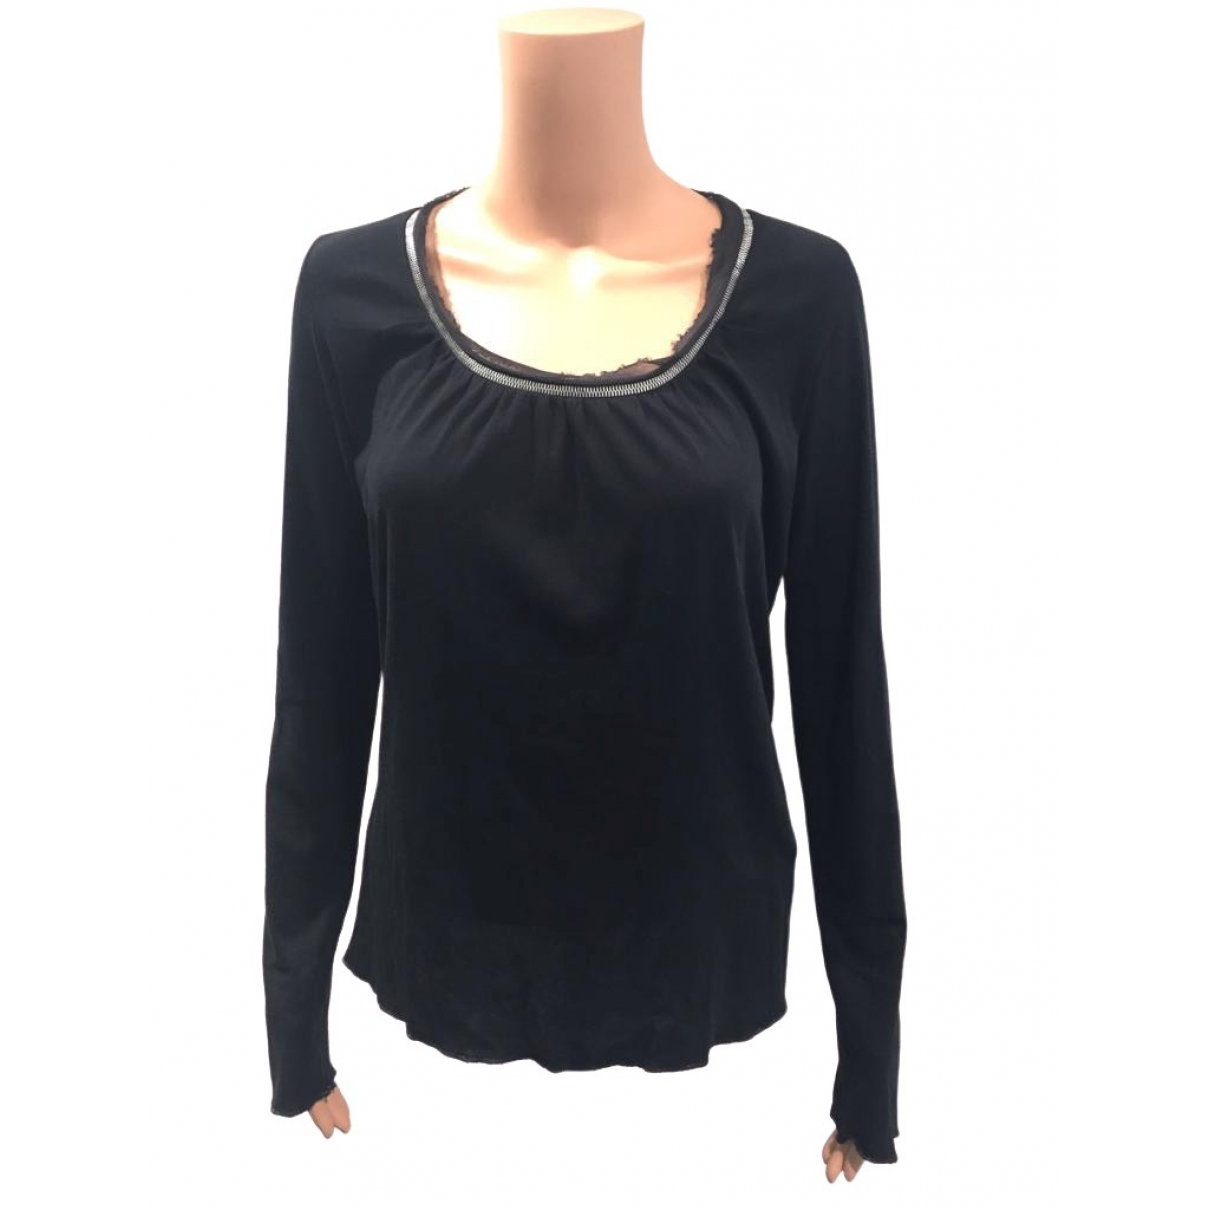 Boss \N Black  top for Women M International